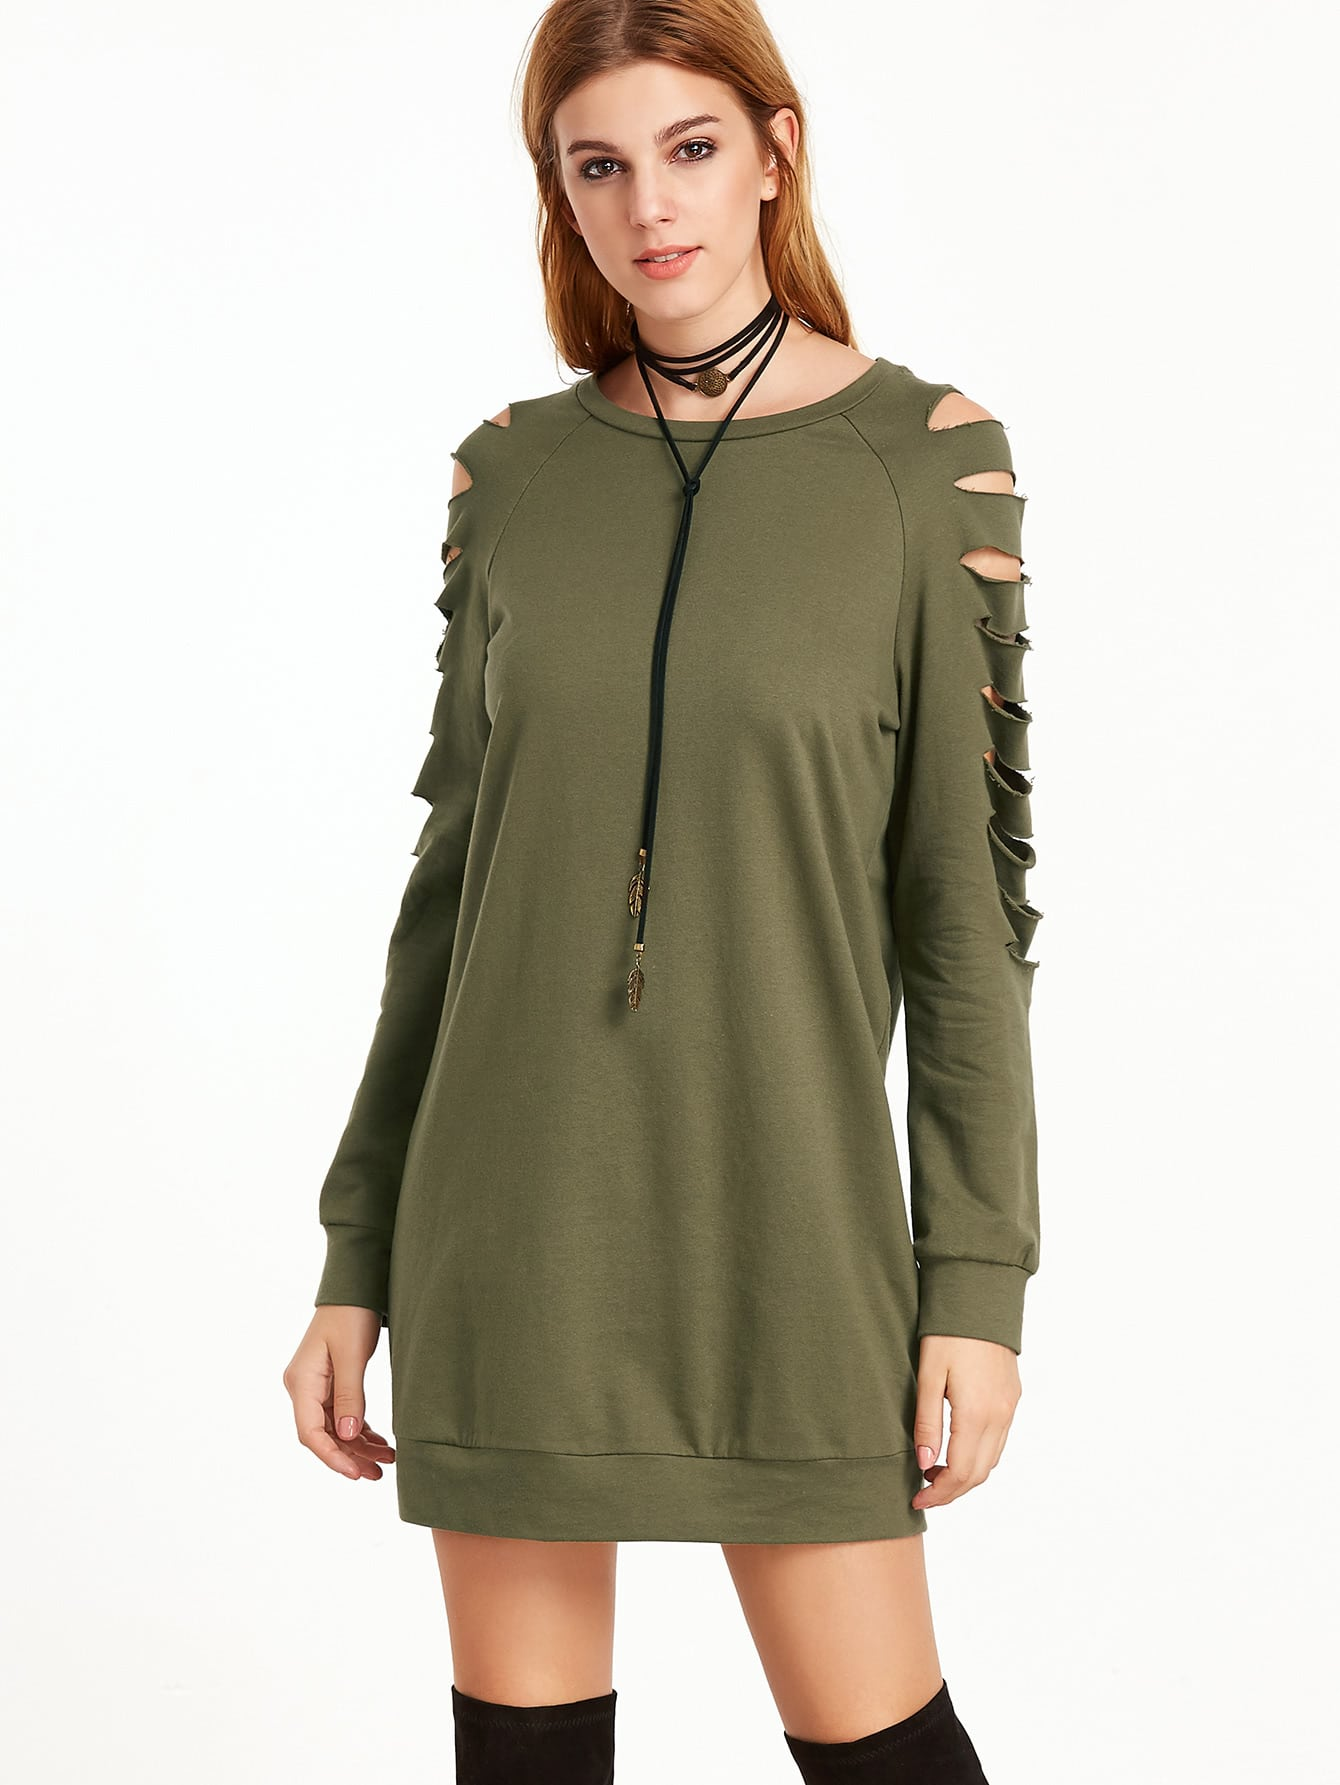 Olive Green Ripped Raglan Sleeve Sweatshirt DressOlive Green Ripped Raglan Sleeve Sweatshirt Dress<br><br>color: Green<br>size: M,S,XS